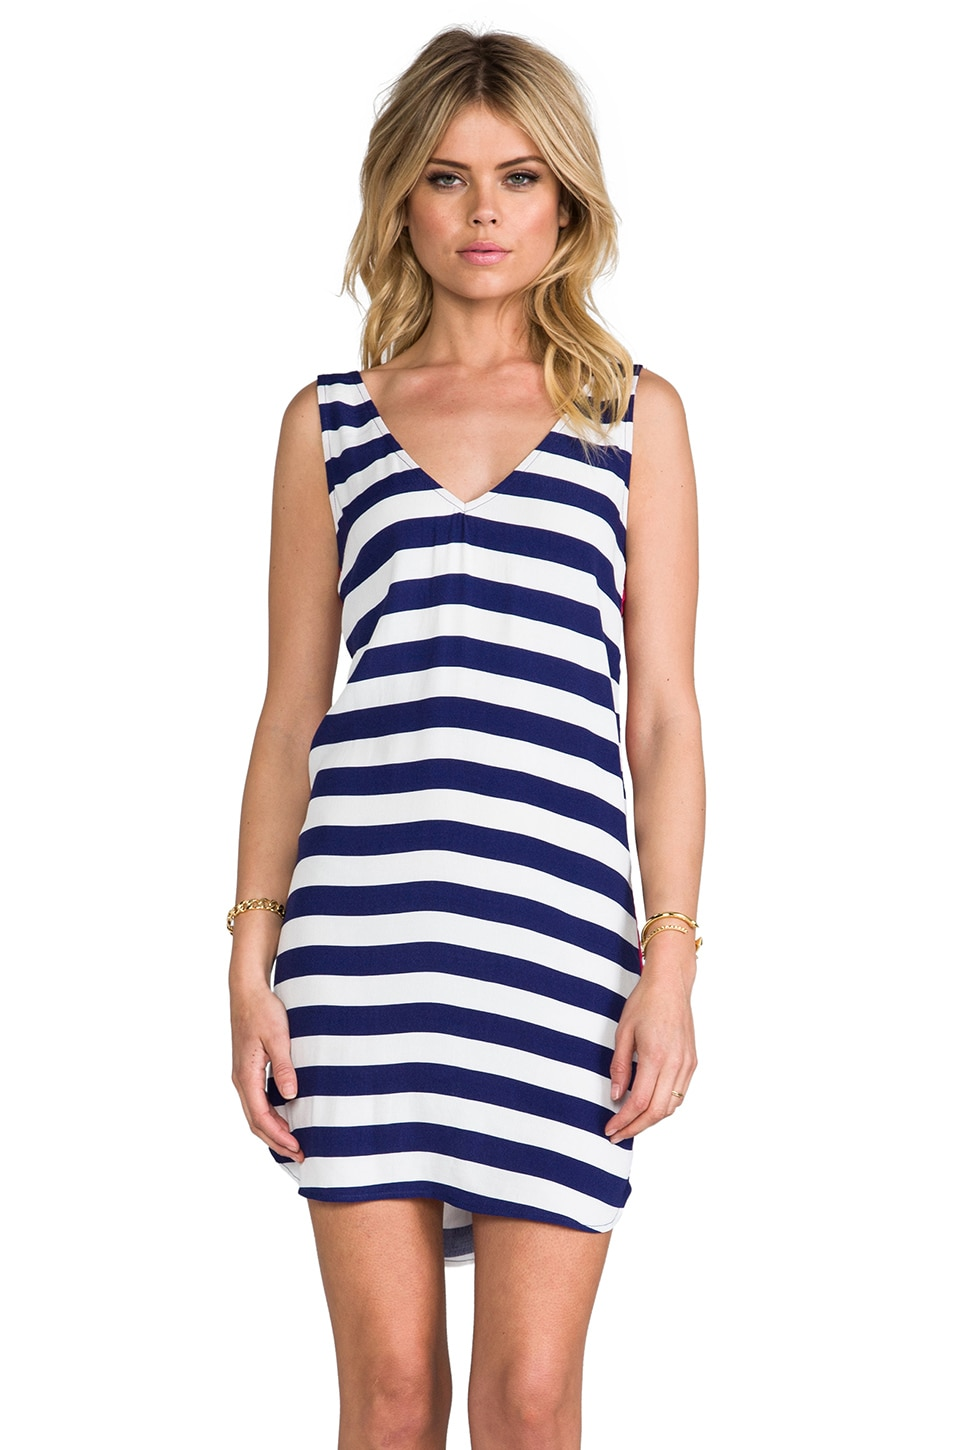 SAM&LAVI Harbor Dress in Stripe